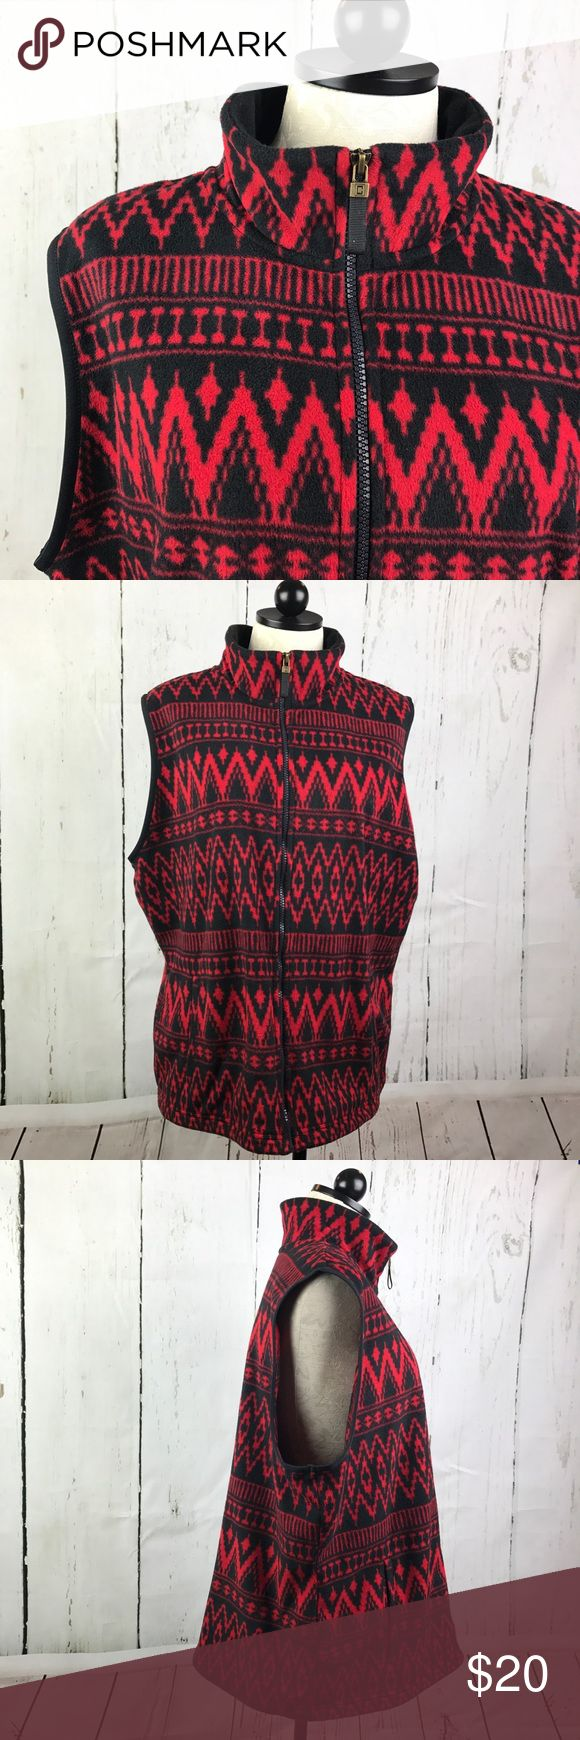 """Chaps Fleece Zip Up Vest Jacket Women's Plus Perfect for Fall!🍁and winter☃️! Oh so soft with beautiful Aztec pattern!! Mockneck and front side pockets  26"""" Length back neckline to hem 26"""" bust, Underarms across the front Great condition with no rips, stains, etc. Reasonable offers accepted😊 Happy shopping!🌼 Chaps Jackets & Coats Vests"""